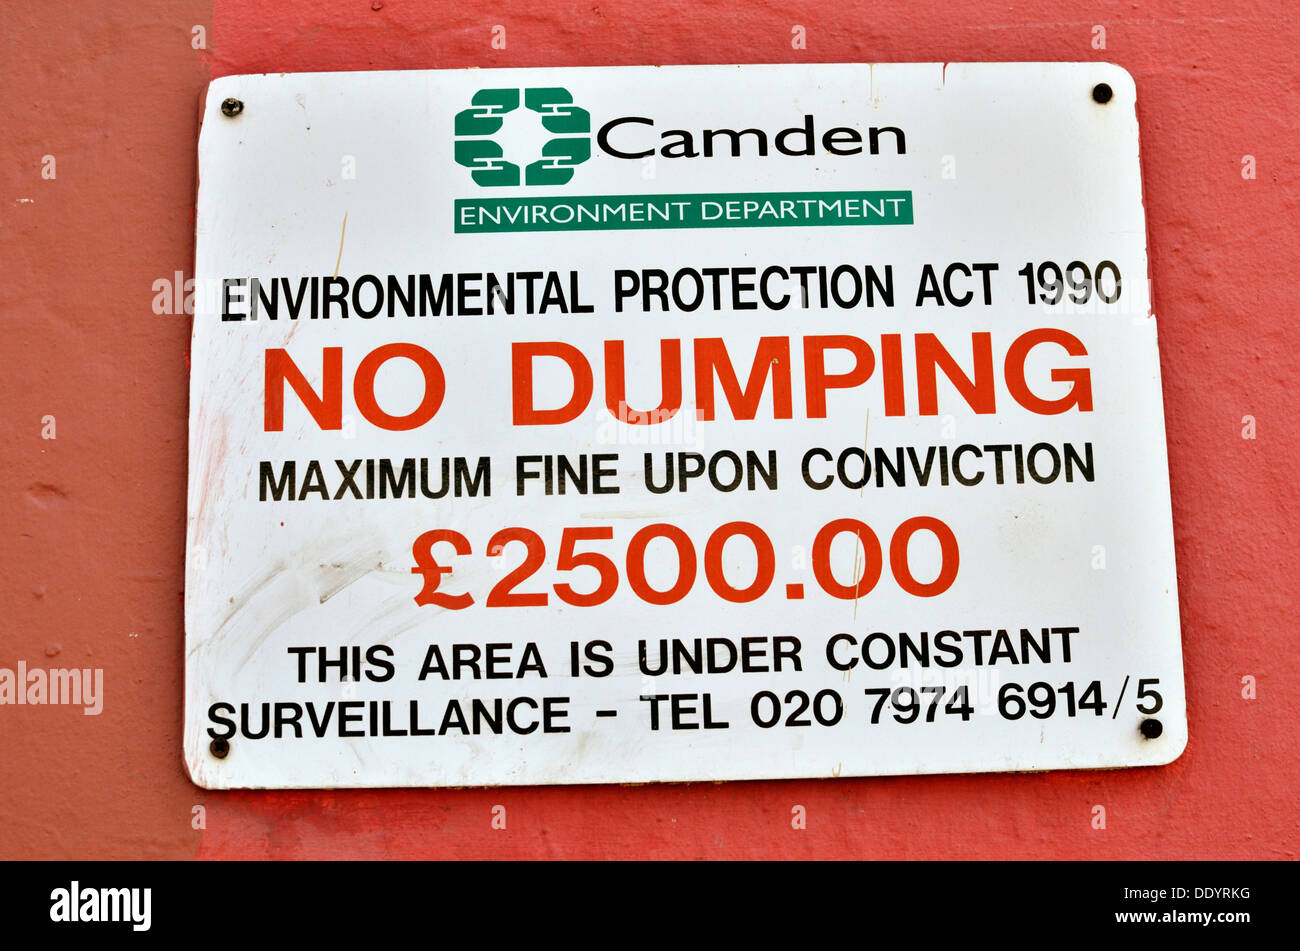 Camden Council 'No Dumping' sign on a wall, London, UK - Stock Image